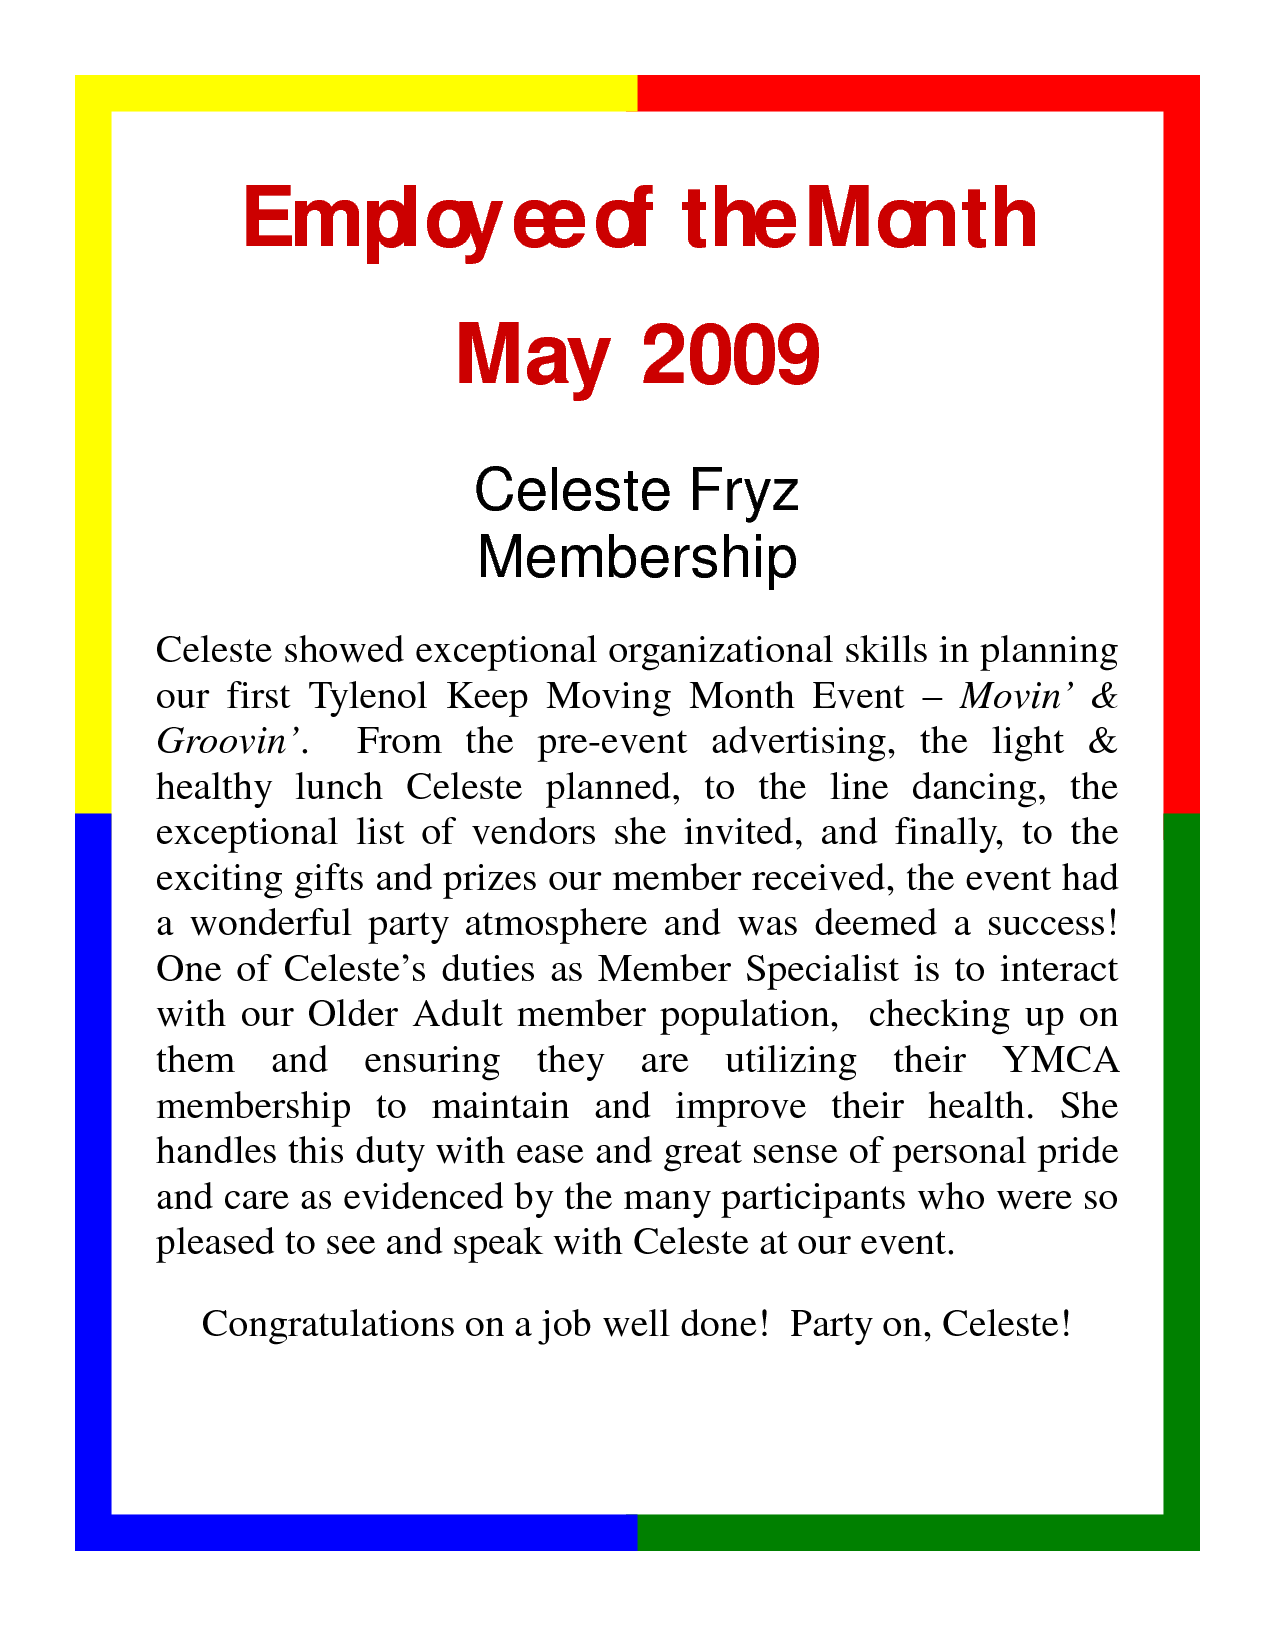 Employee Of The Month Nomination Example